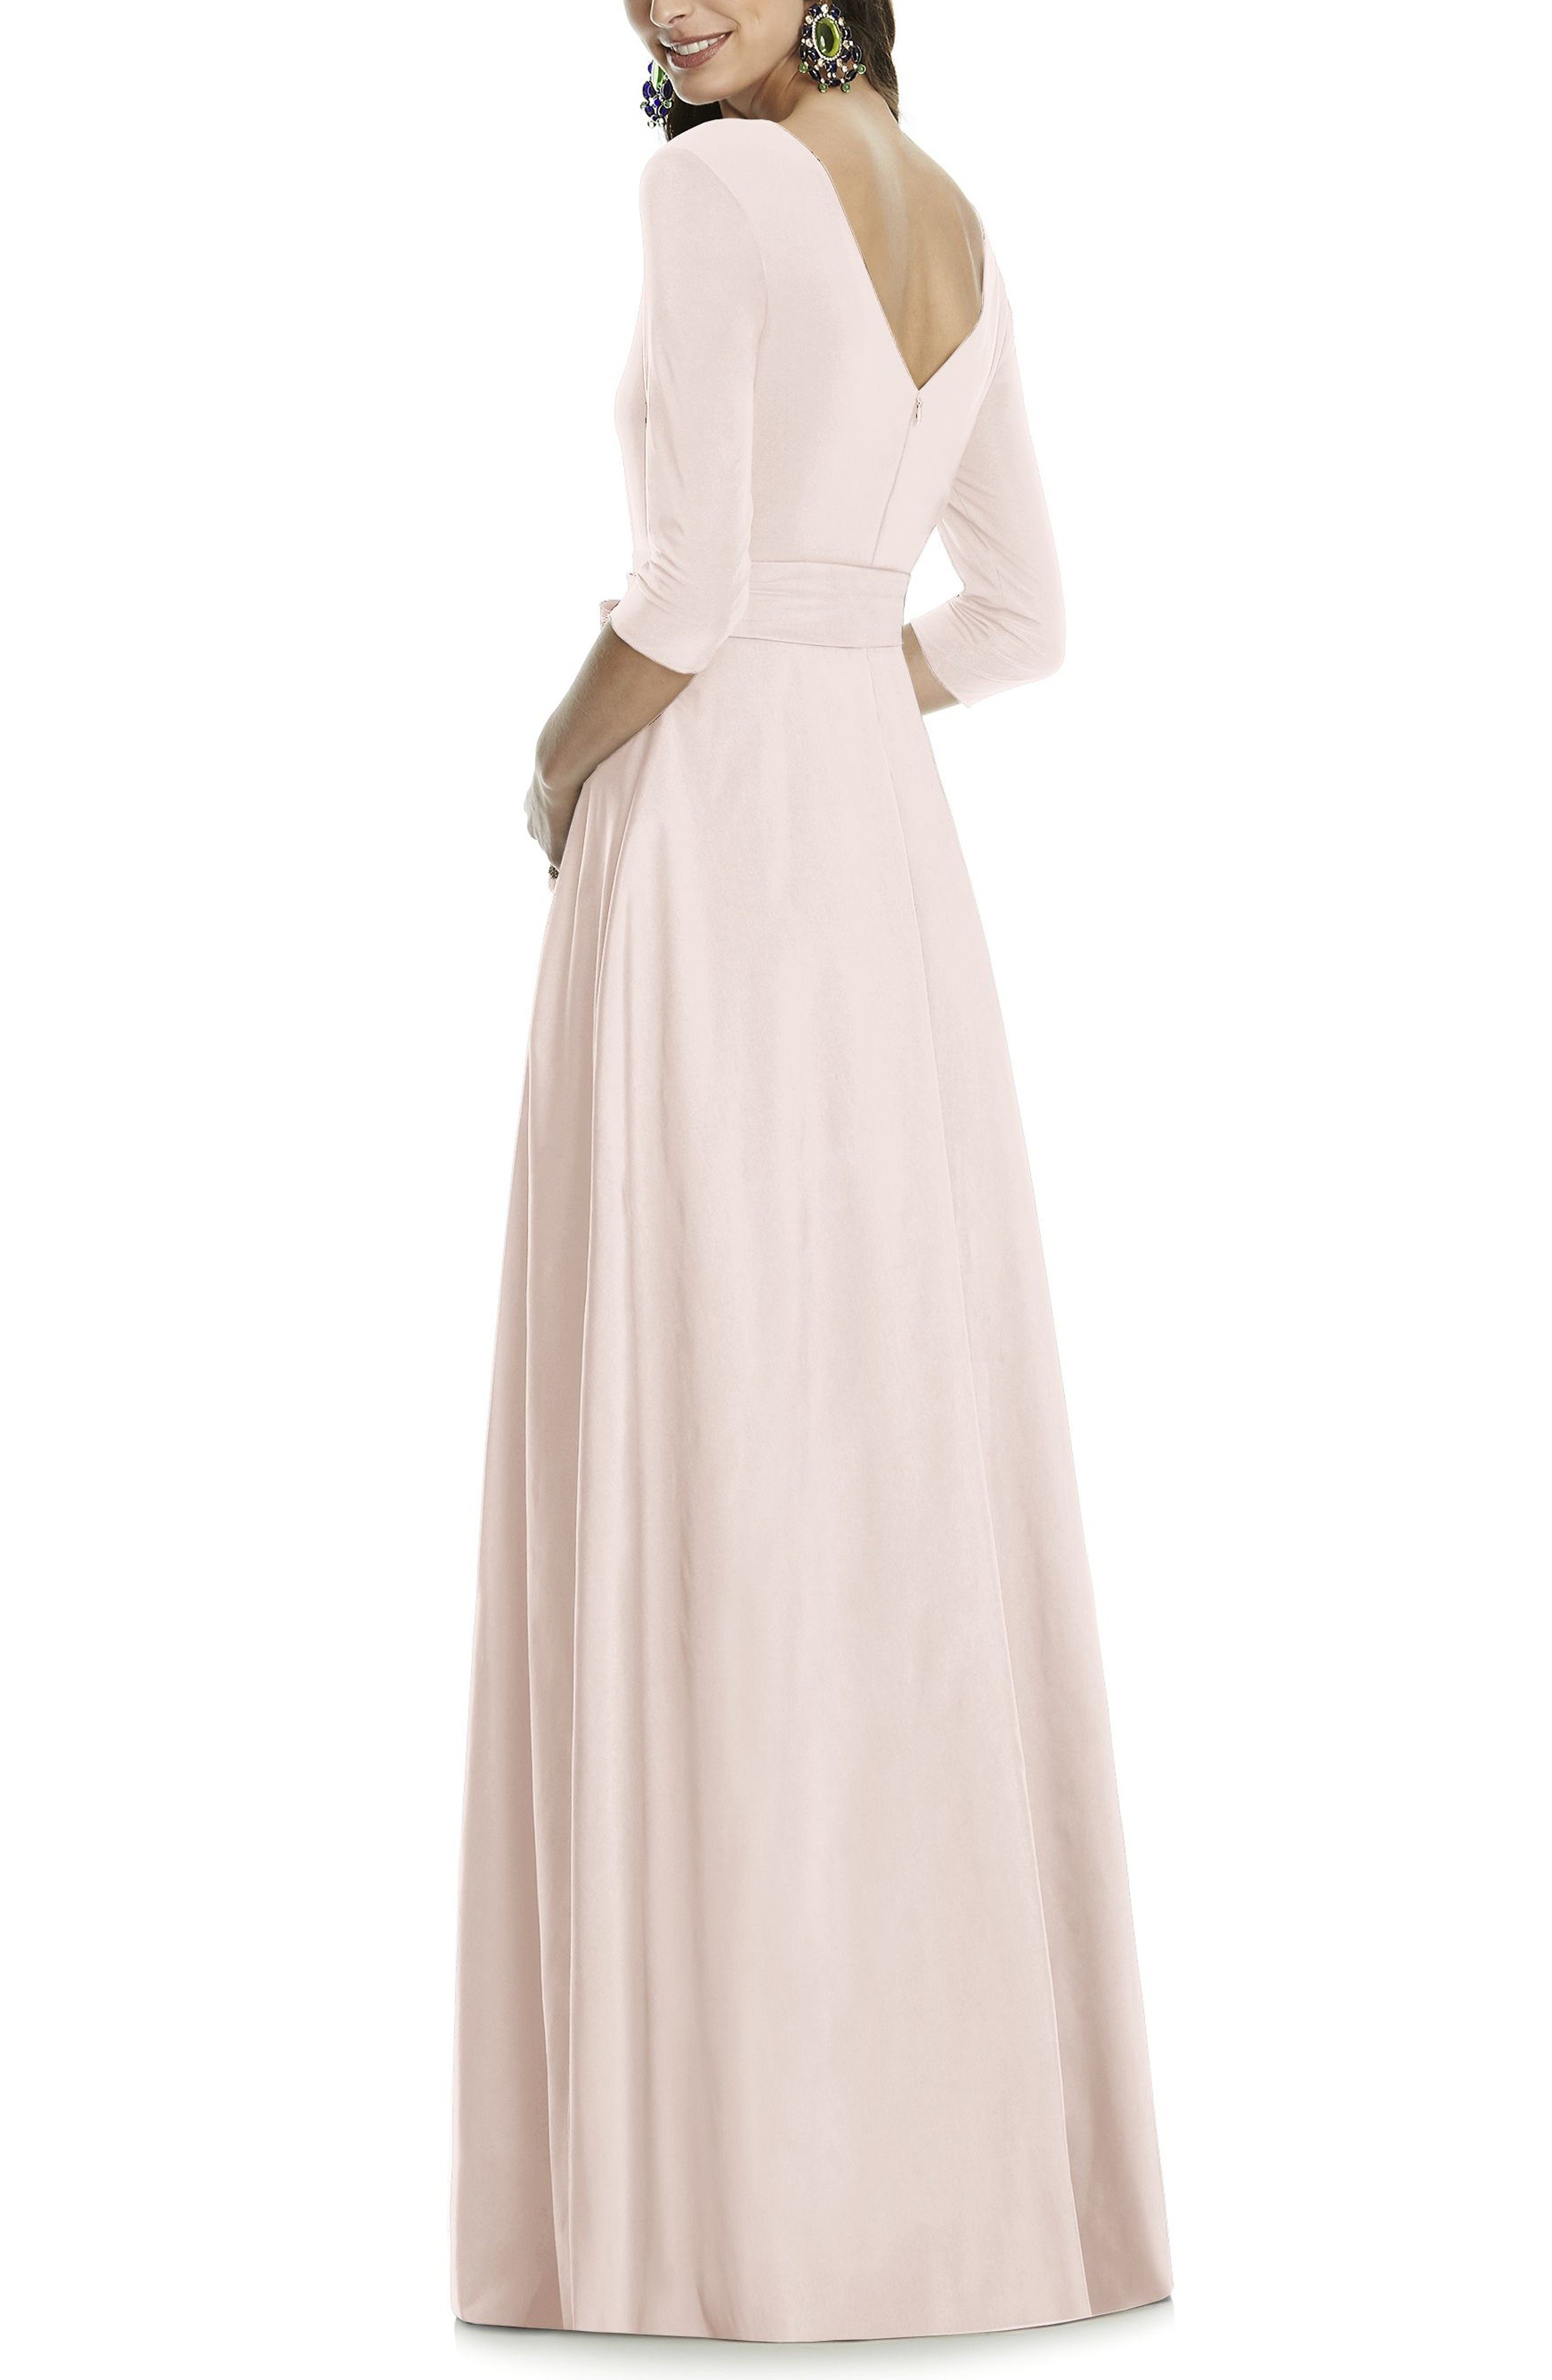 ALFRED SUNG Jersey Bodice A-Line Blush Gown - We Select Dresses